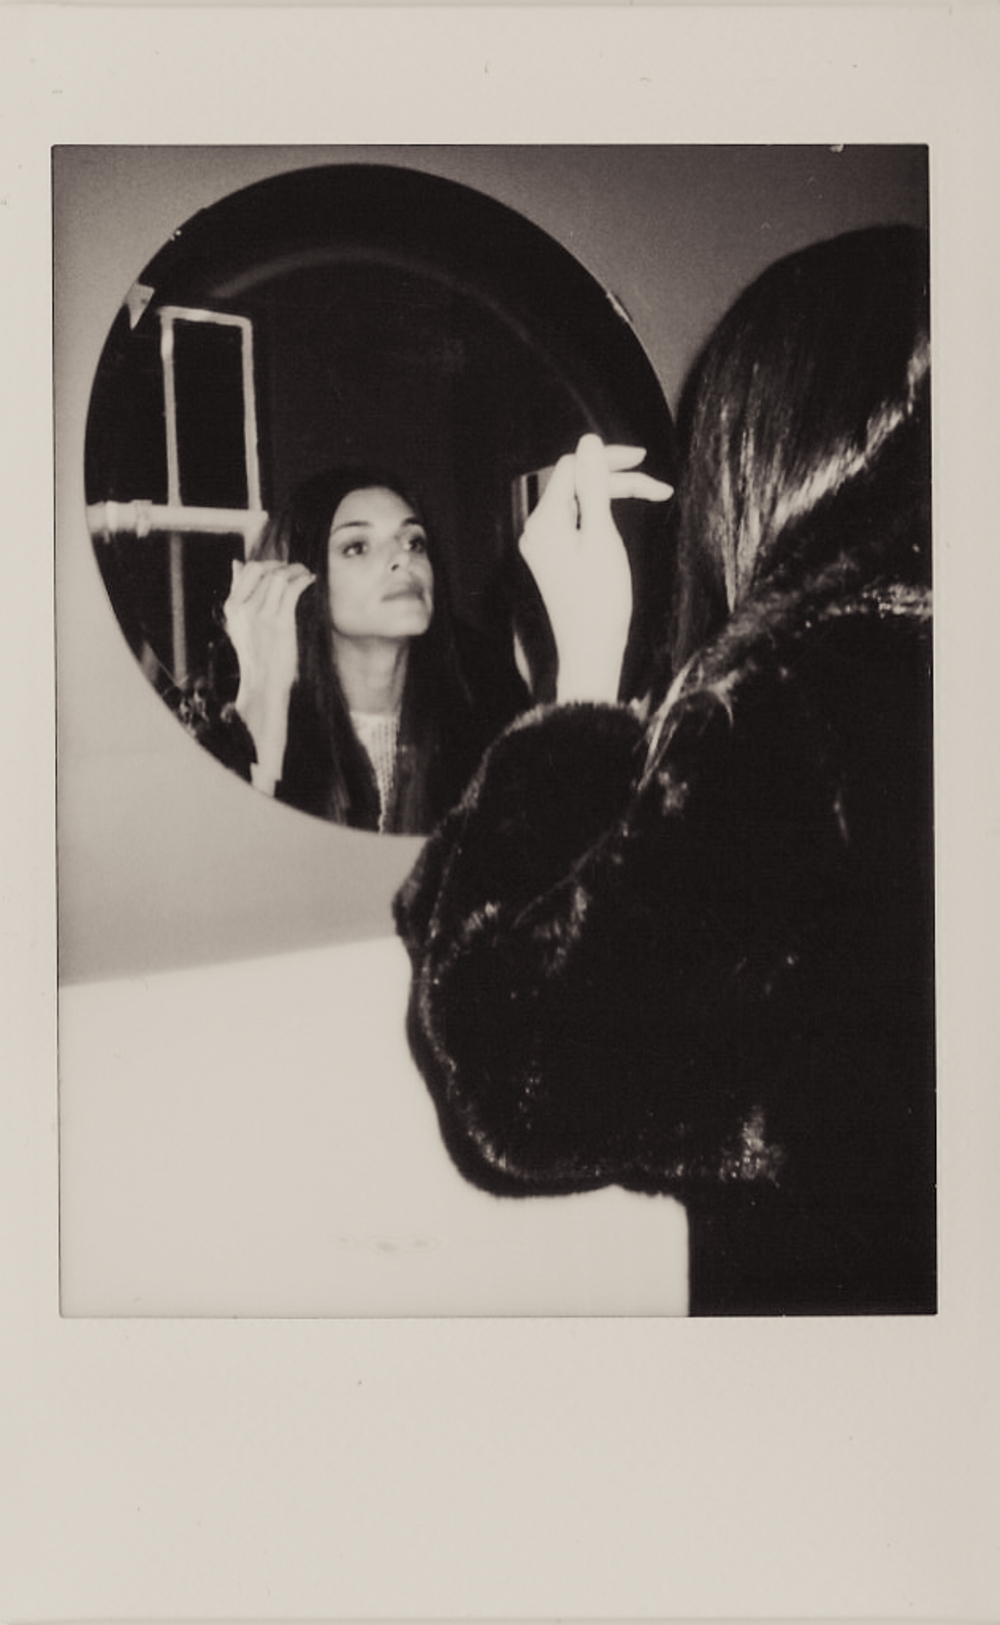 2015 Dec_Darling-Polaroid7.jpg